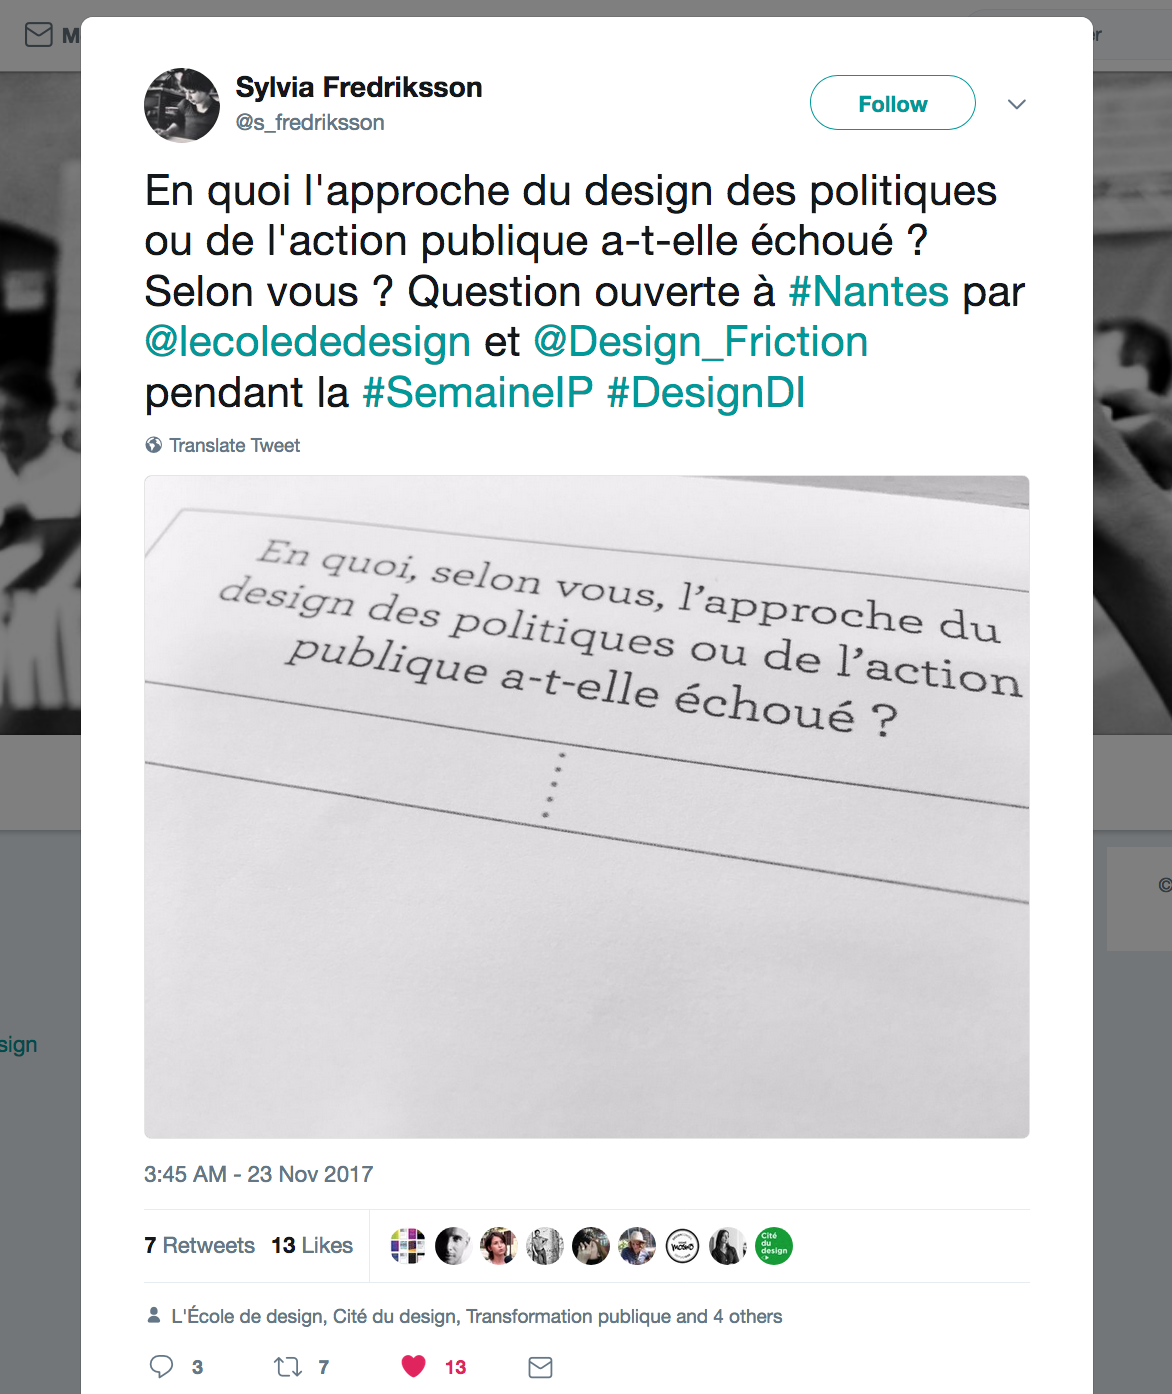 On November 23, 2017, through the work of  Bastien Kerspern  and Gaël Guilloux, the first spin-off satellite DRF event was held as part of the Public Innovation Week (La Semaine de l'Innovation Publique) in Nantes, as a way to engage local stakeholders in reflecting on the way in which the approach of designing policies and public action had failed. The question put forward was:   To what extent, according to you, has the approach of designing policies and public action failed? (translated from French).   Above, documentation from the event by  Sylvia Fredriksson . It is very exciting to see DRF move beyond the English language, and venture into new design contexts, with others at the helm.